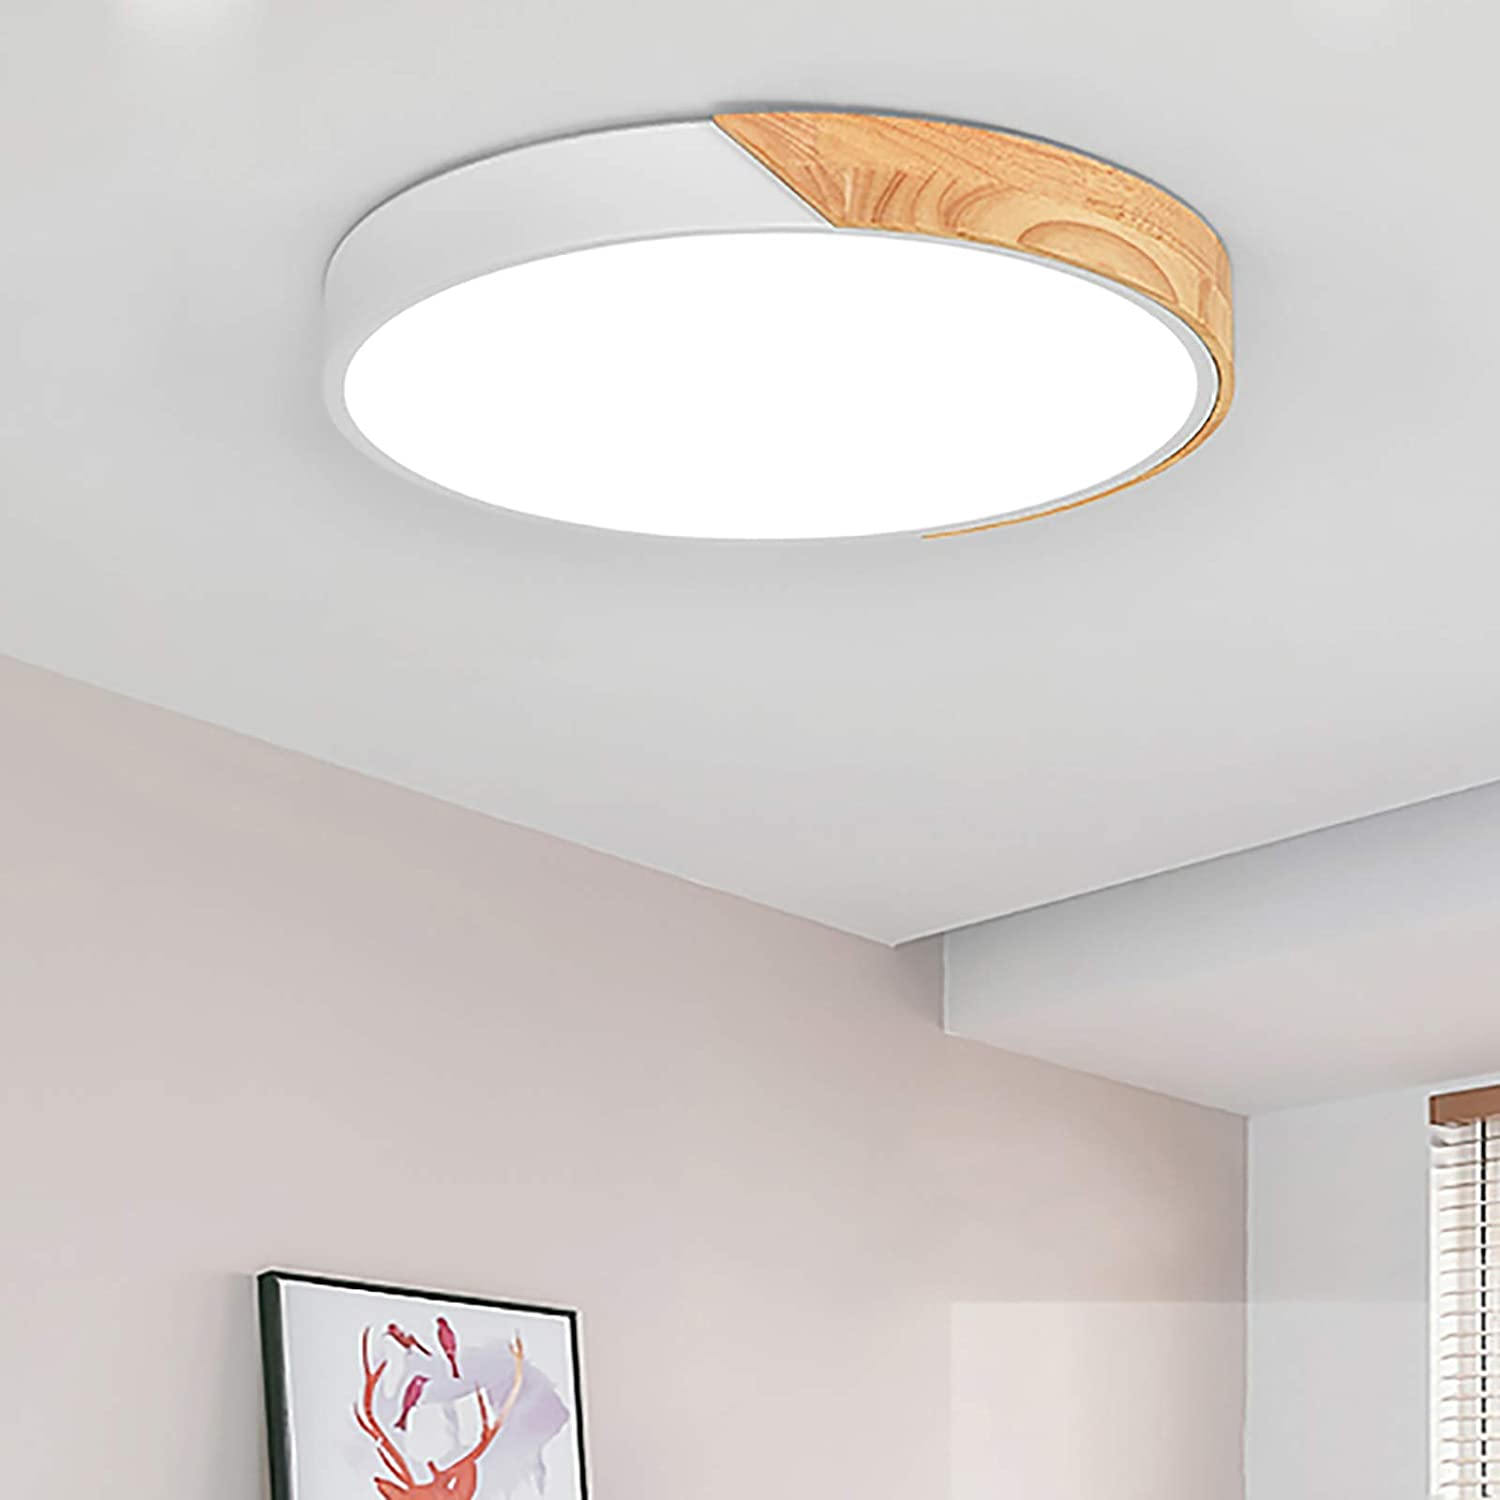 Amazon Com Novo Light Ceiling Light Dimmable 19inch Modern Minimalist Led Round Shaped Wood Metal Acrylic Flush Mount Ceiling Light With Remote Control White Home Improvement